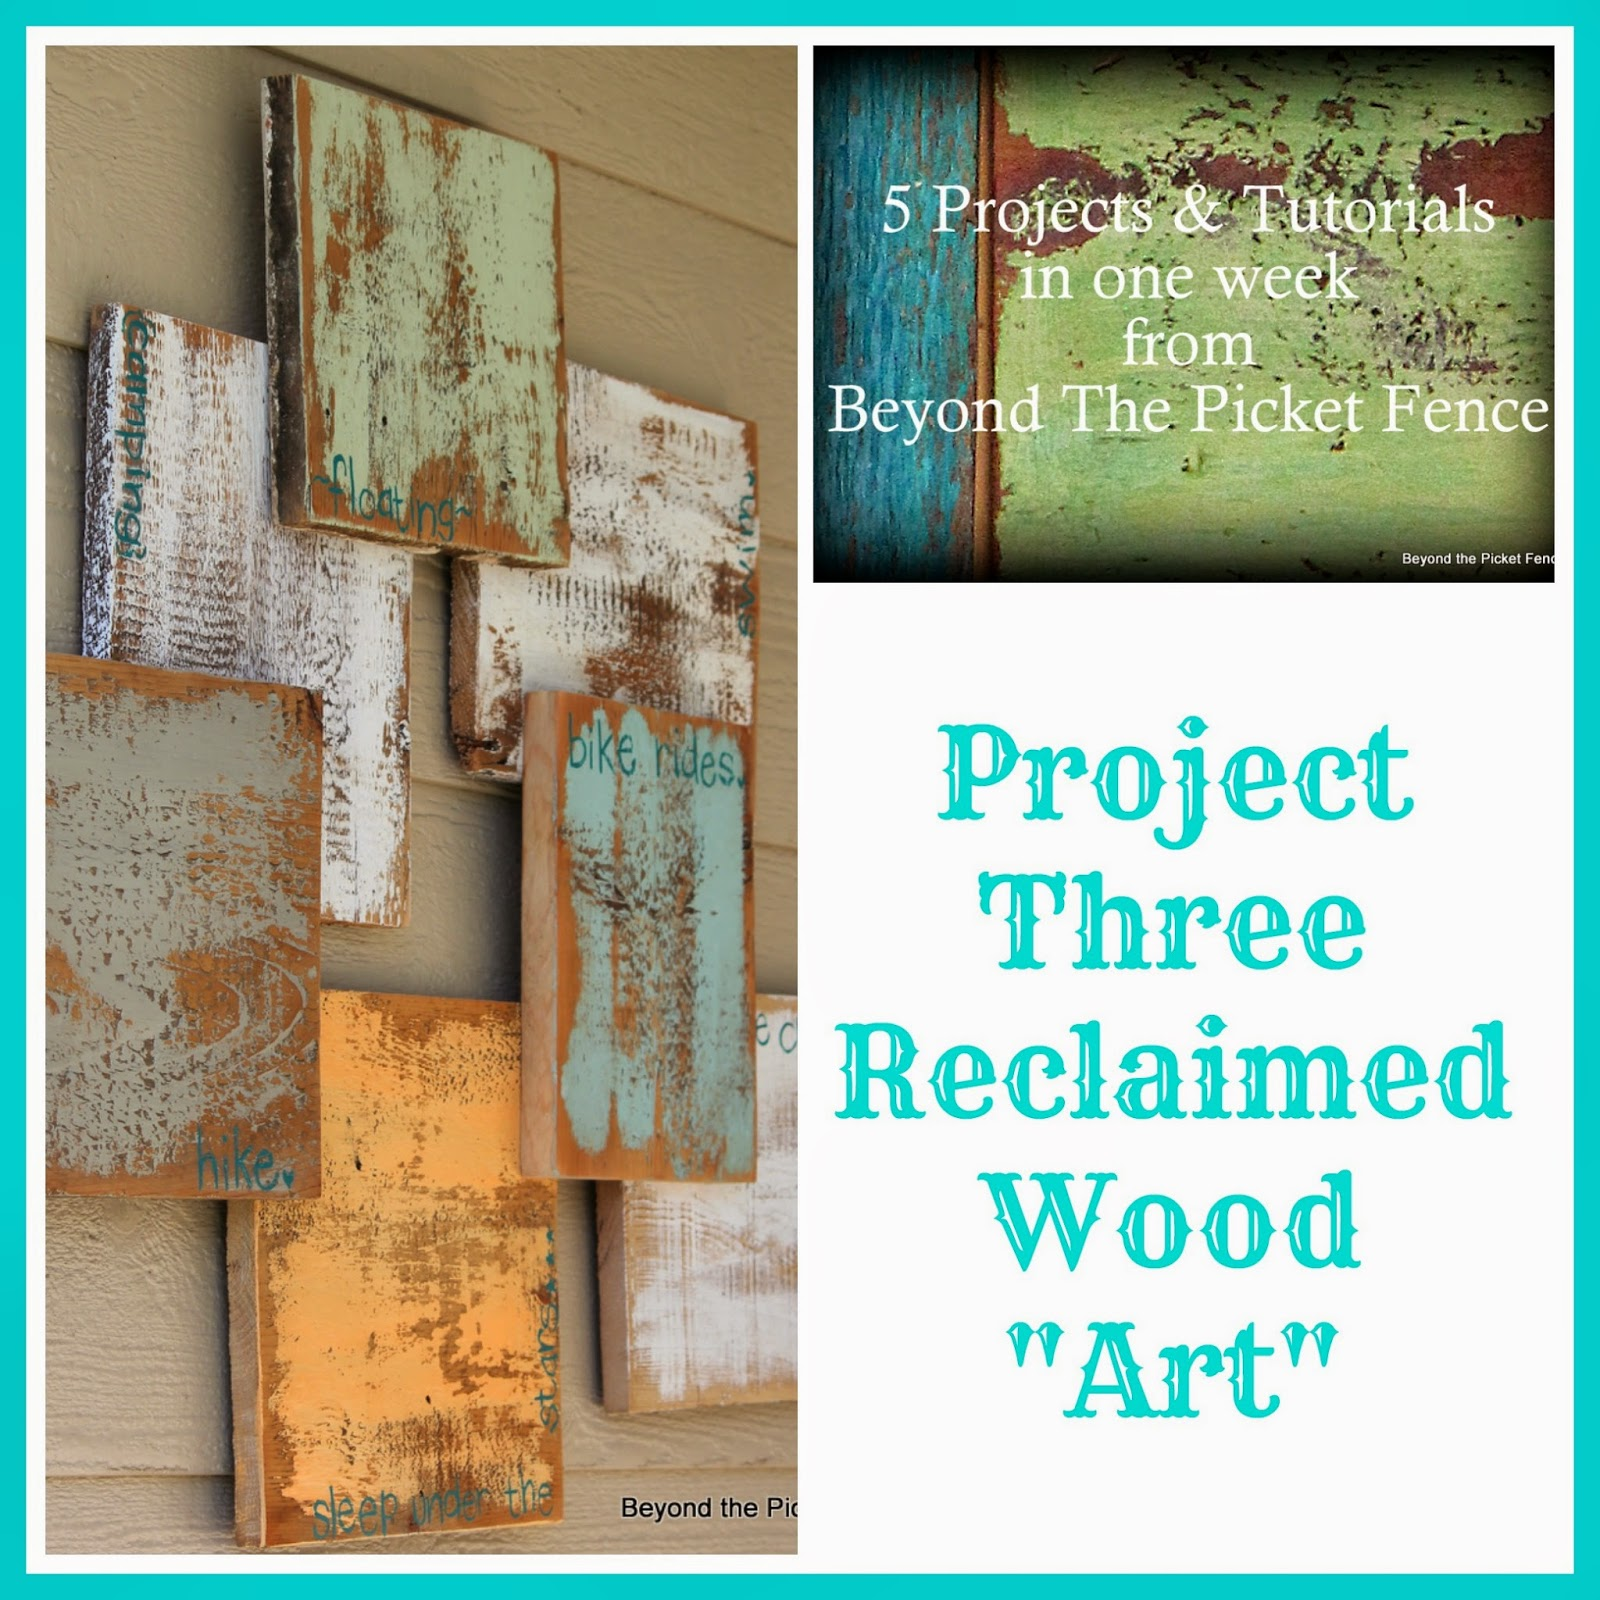 5 projects in a week project 3 reclaimed wood art http://bec4-beyondthepicketfence.blogspot.com/2014/05/5-projects-in-week-project-3-reclaimed.html